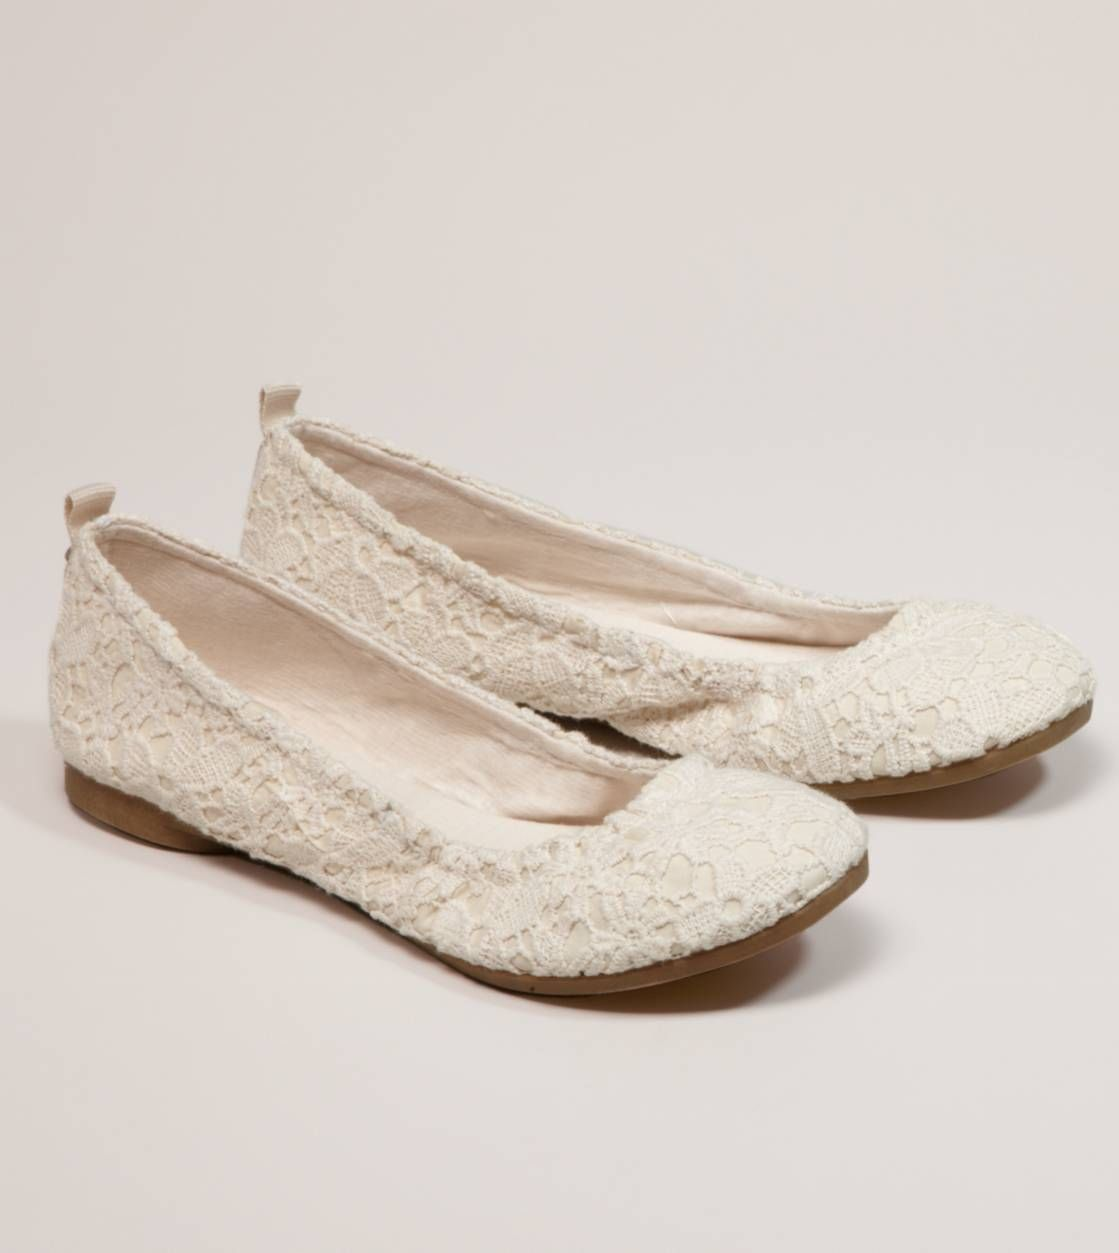 4e896c3d672 Cream Crocheted Lace Ballet Flats... could use some of these for my  honeymoon dress